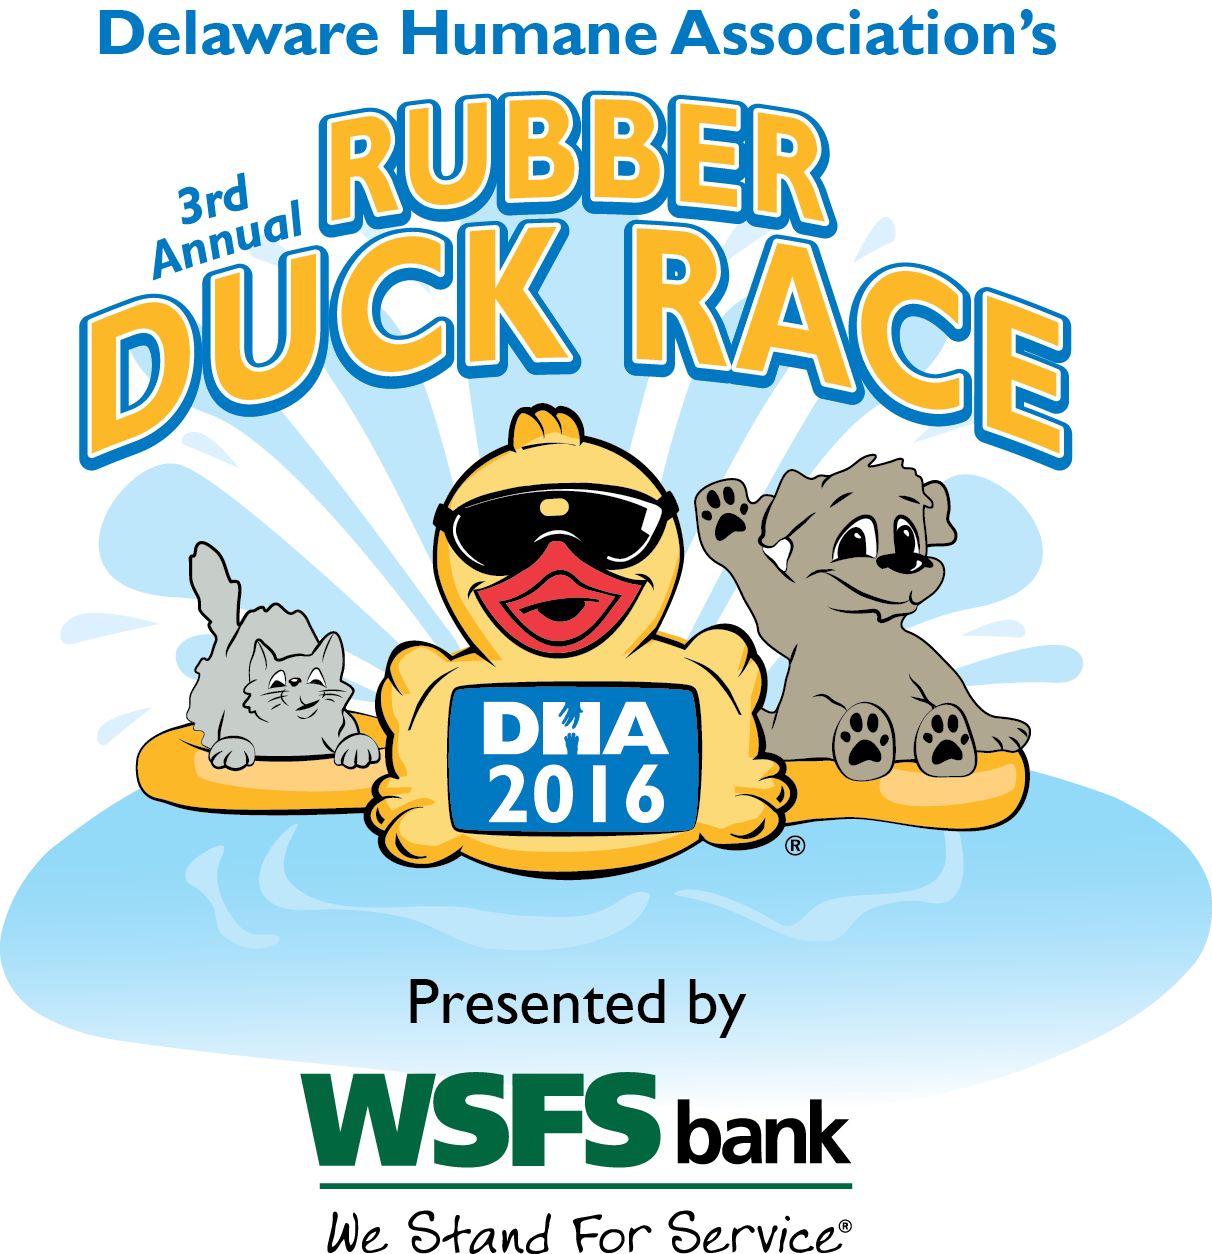 DHA's Rubber Duck Race on October 2nd